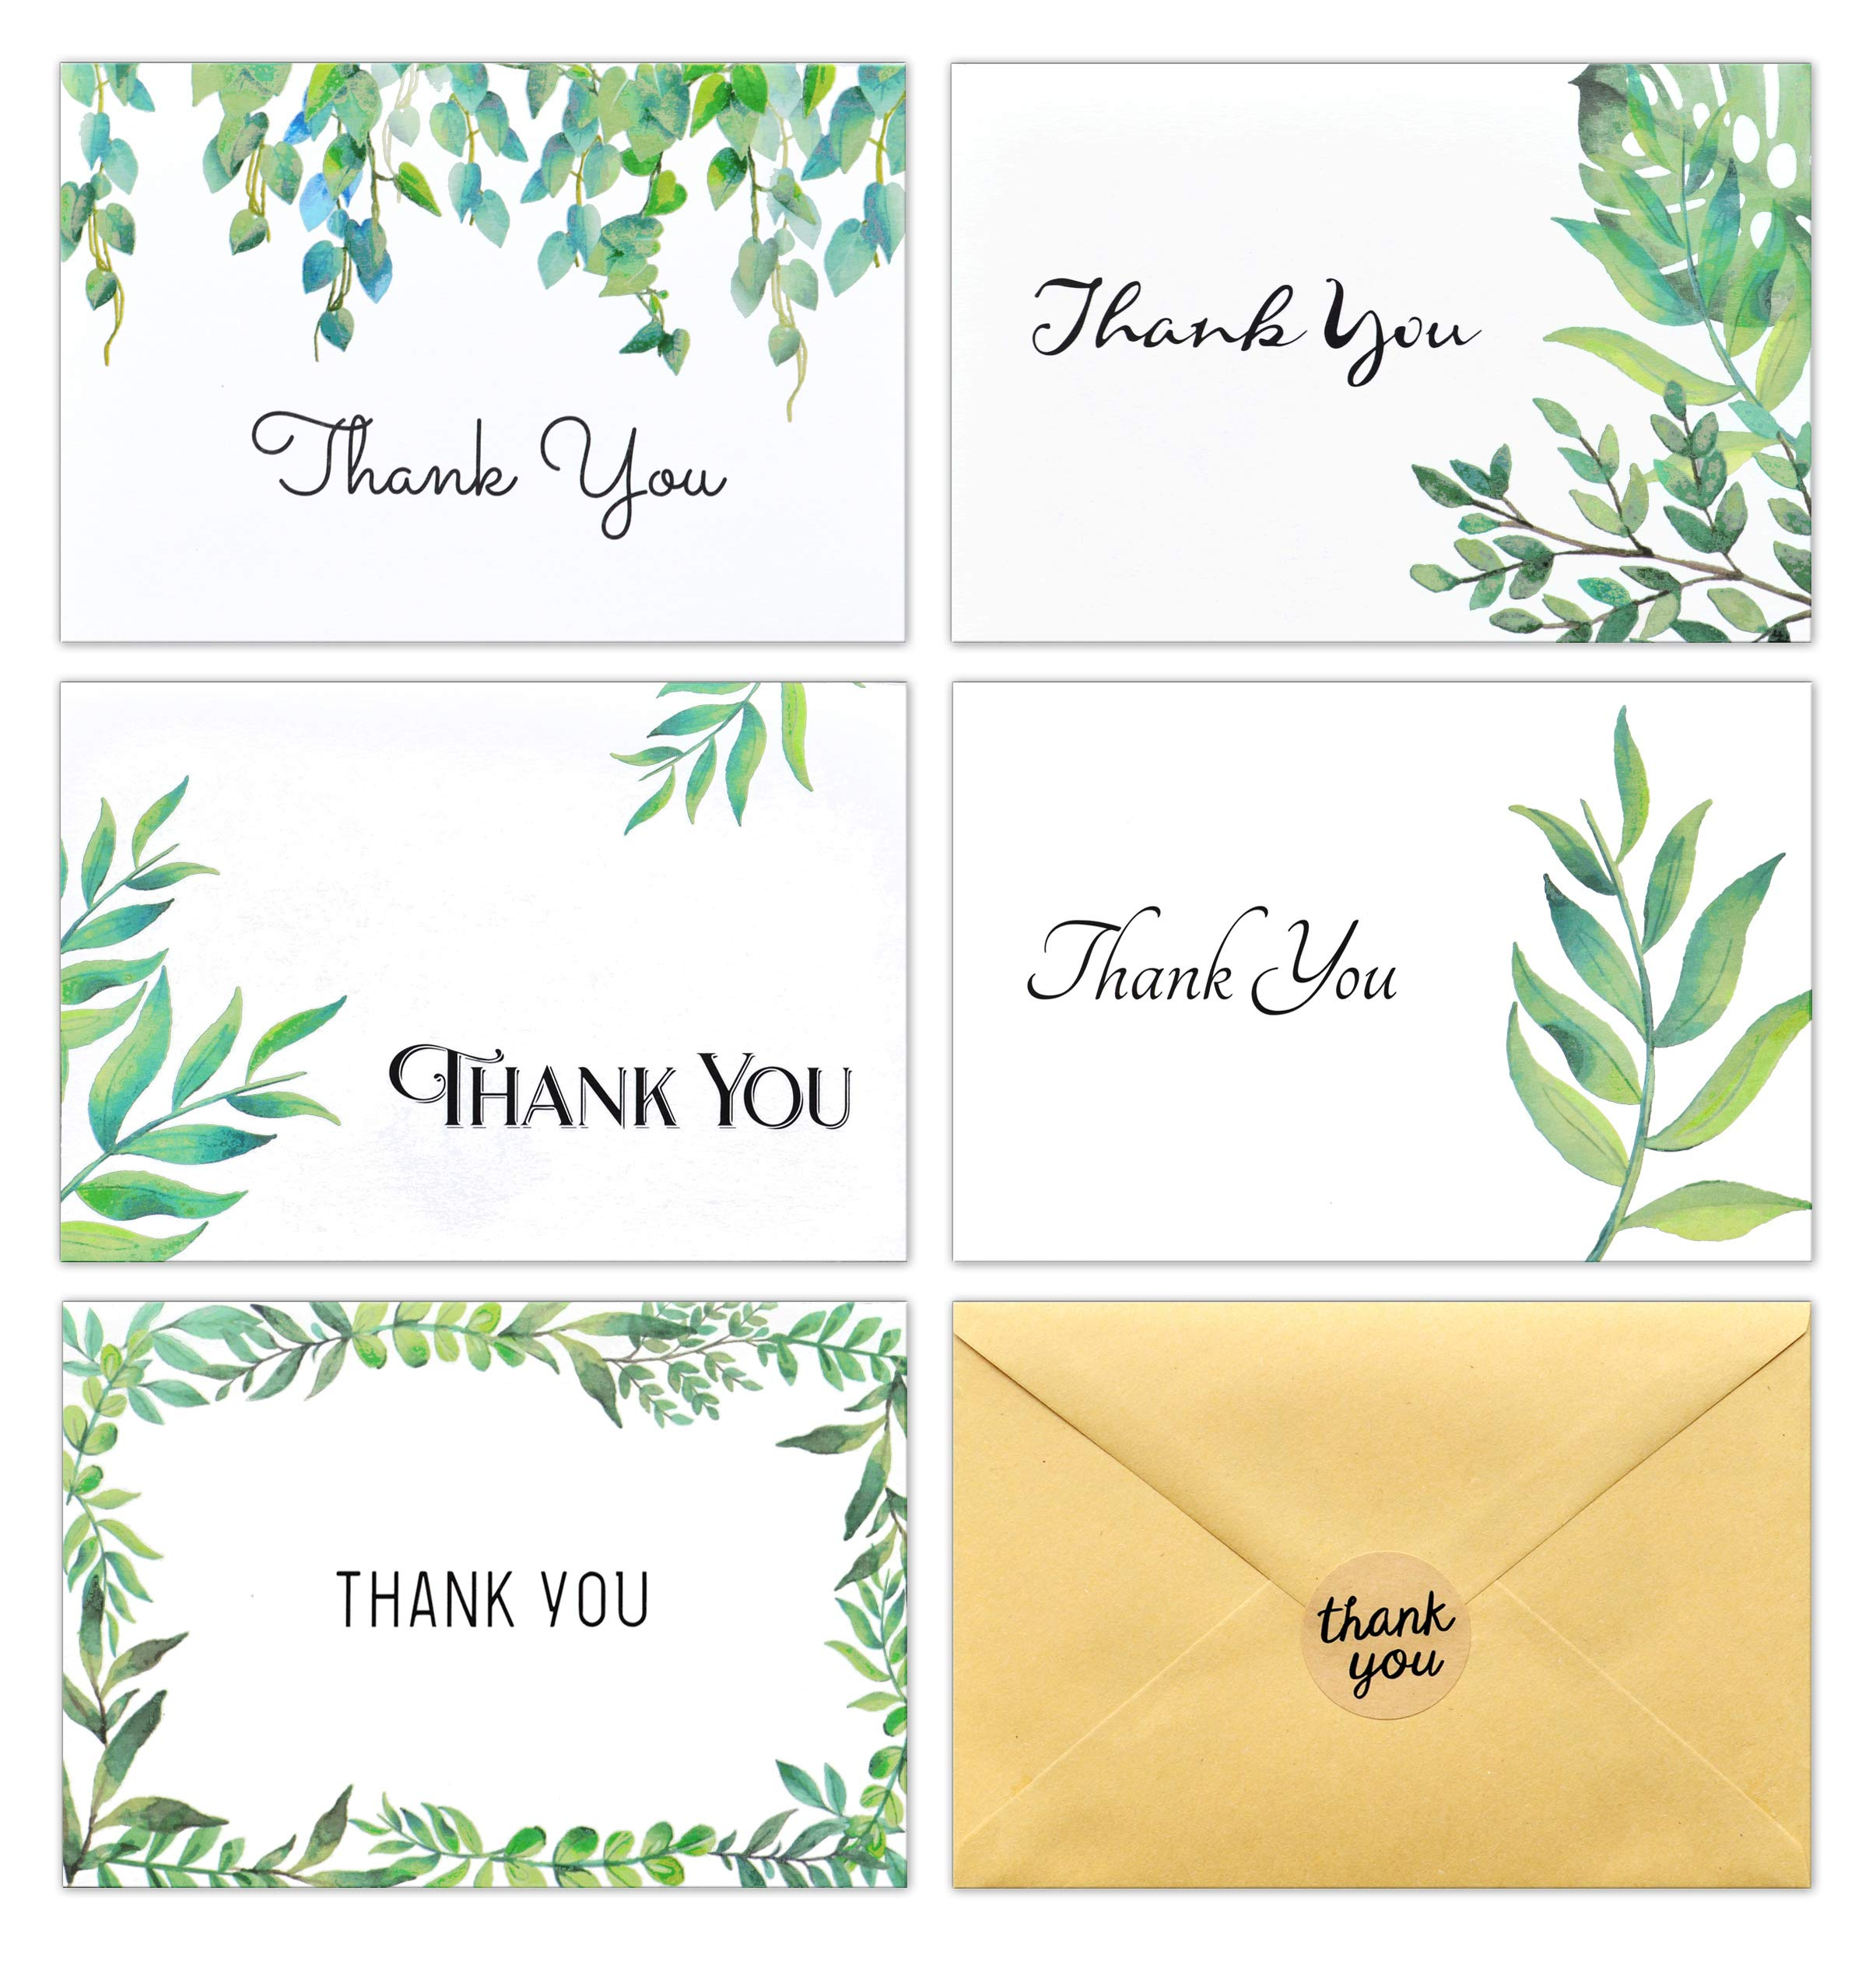 100 Thank You Cards with Envelopes and Stickers - White Kraft Paper Watercolor Floral, Greenery Bulk Notes for Gratitude - 5 Design Cards for Wedding, Formal, Baby Shower and All Occasions 4x6 Inch